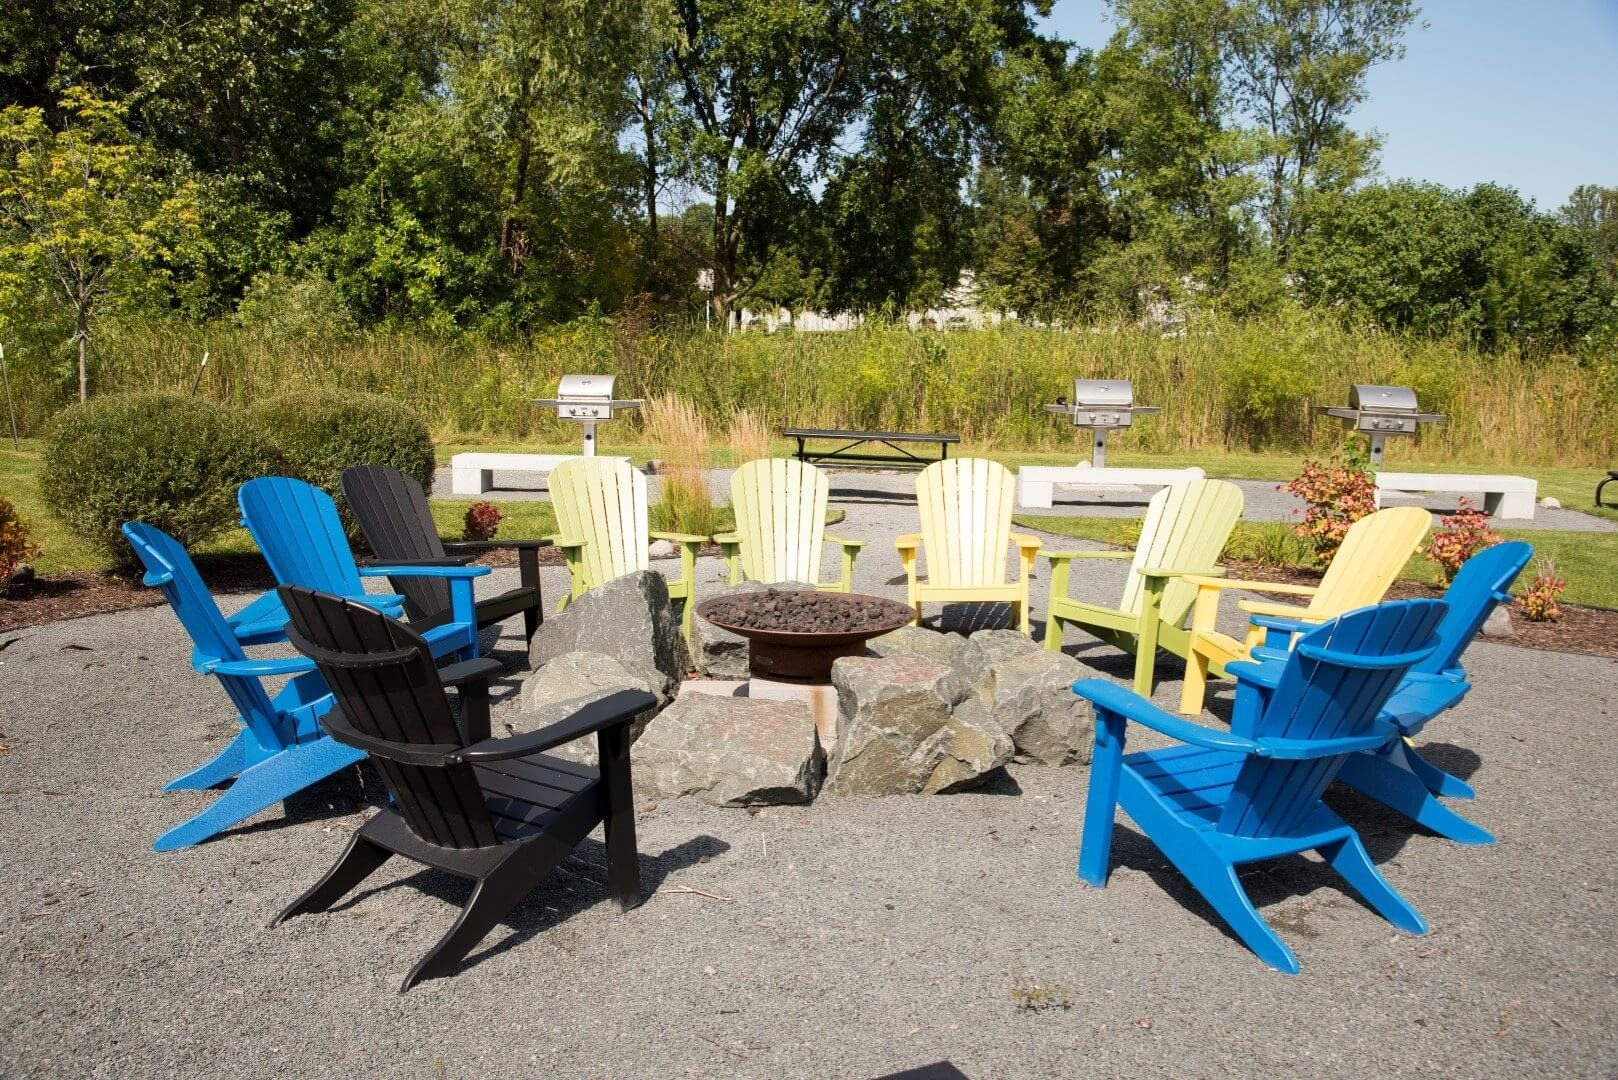 Picnic area at Shorview Grand new apartments in Shoreview